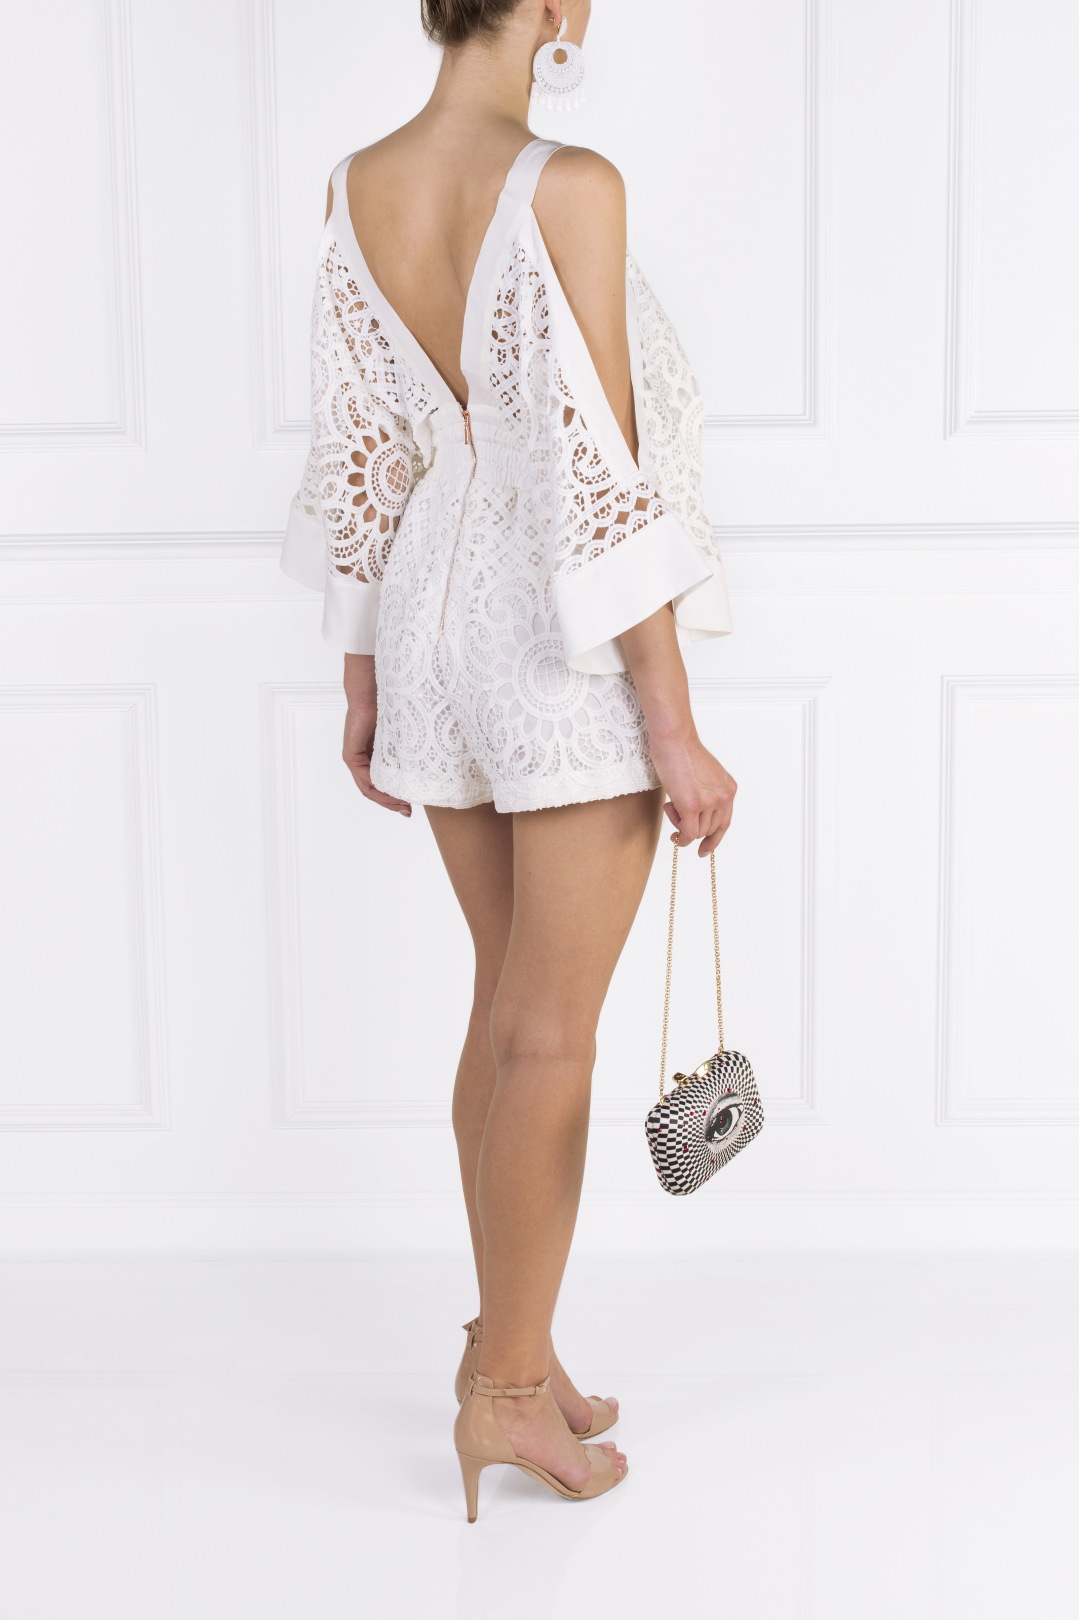 Keep Me There White Playsuit